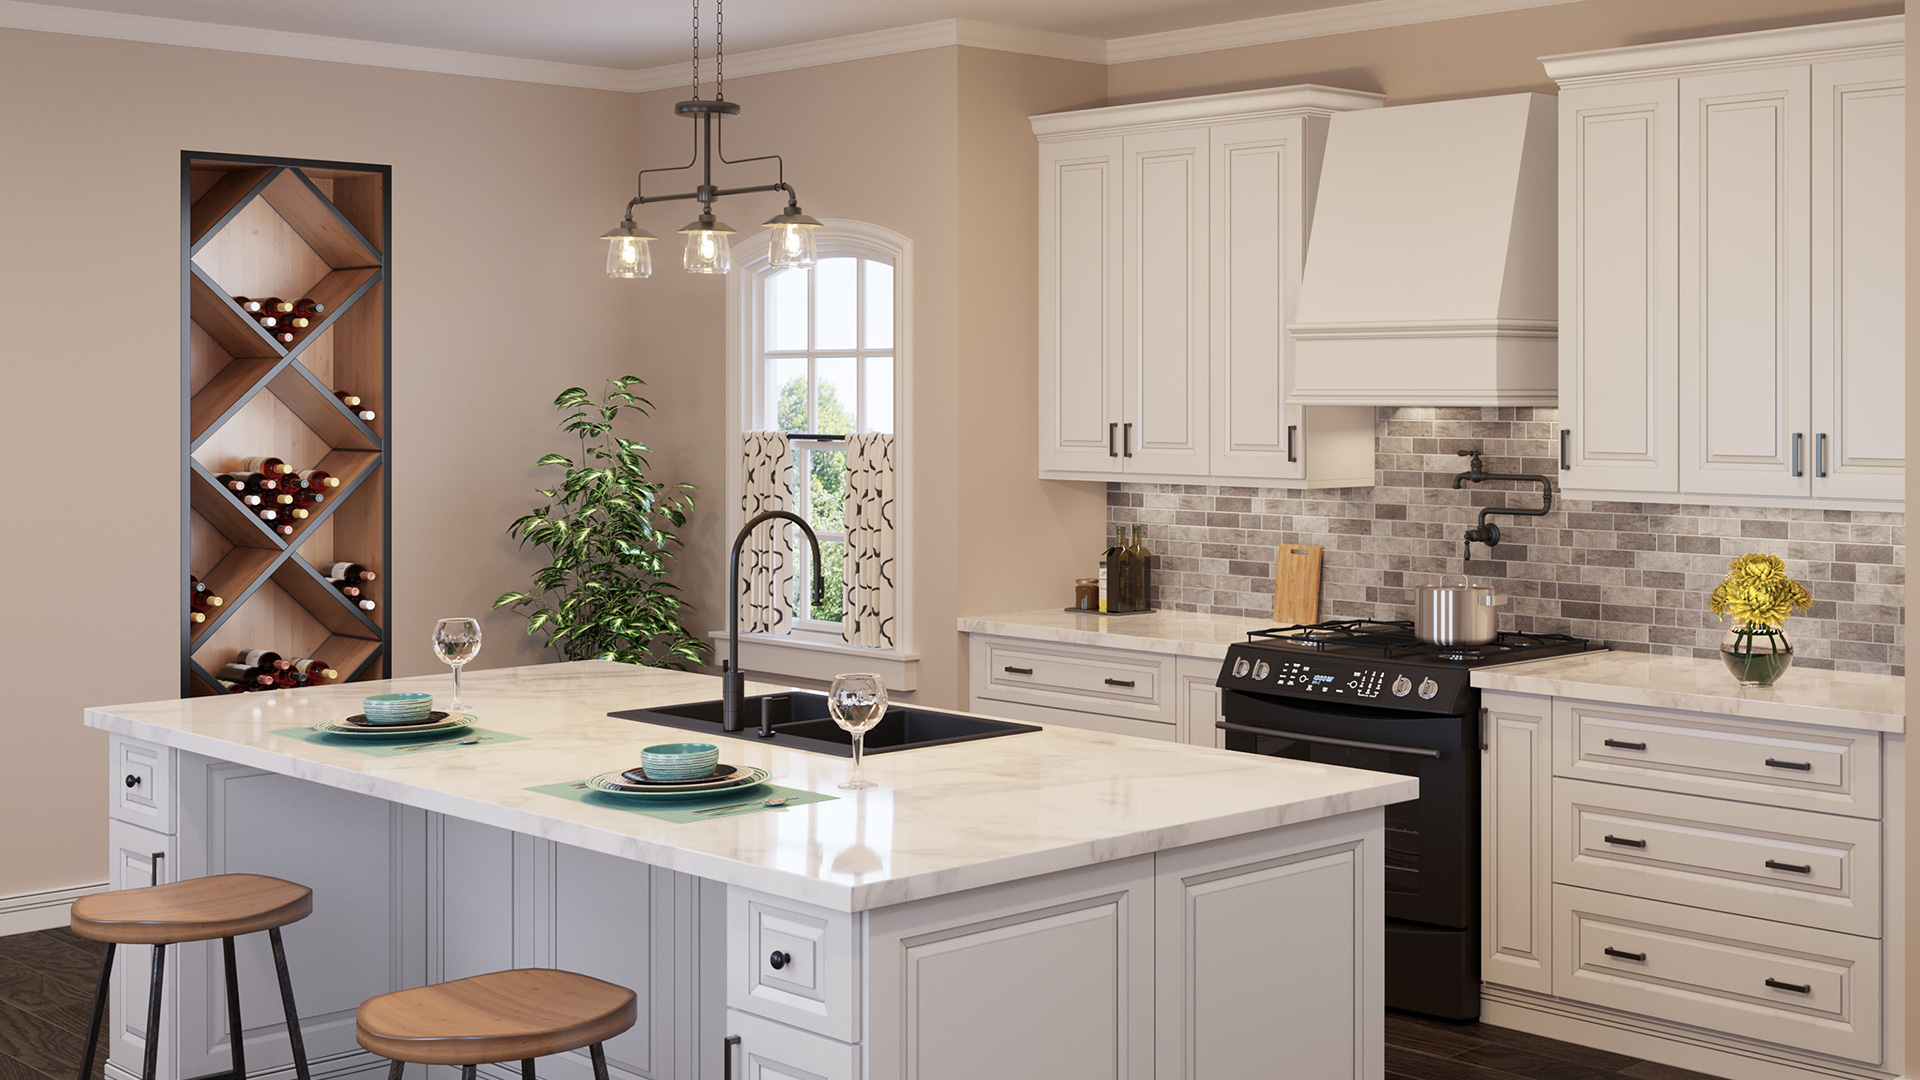 How important is a range hood – and why?